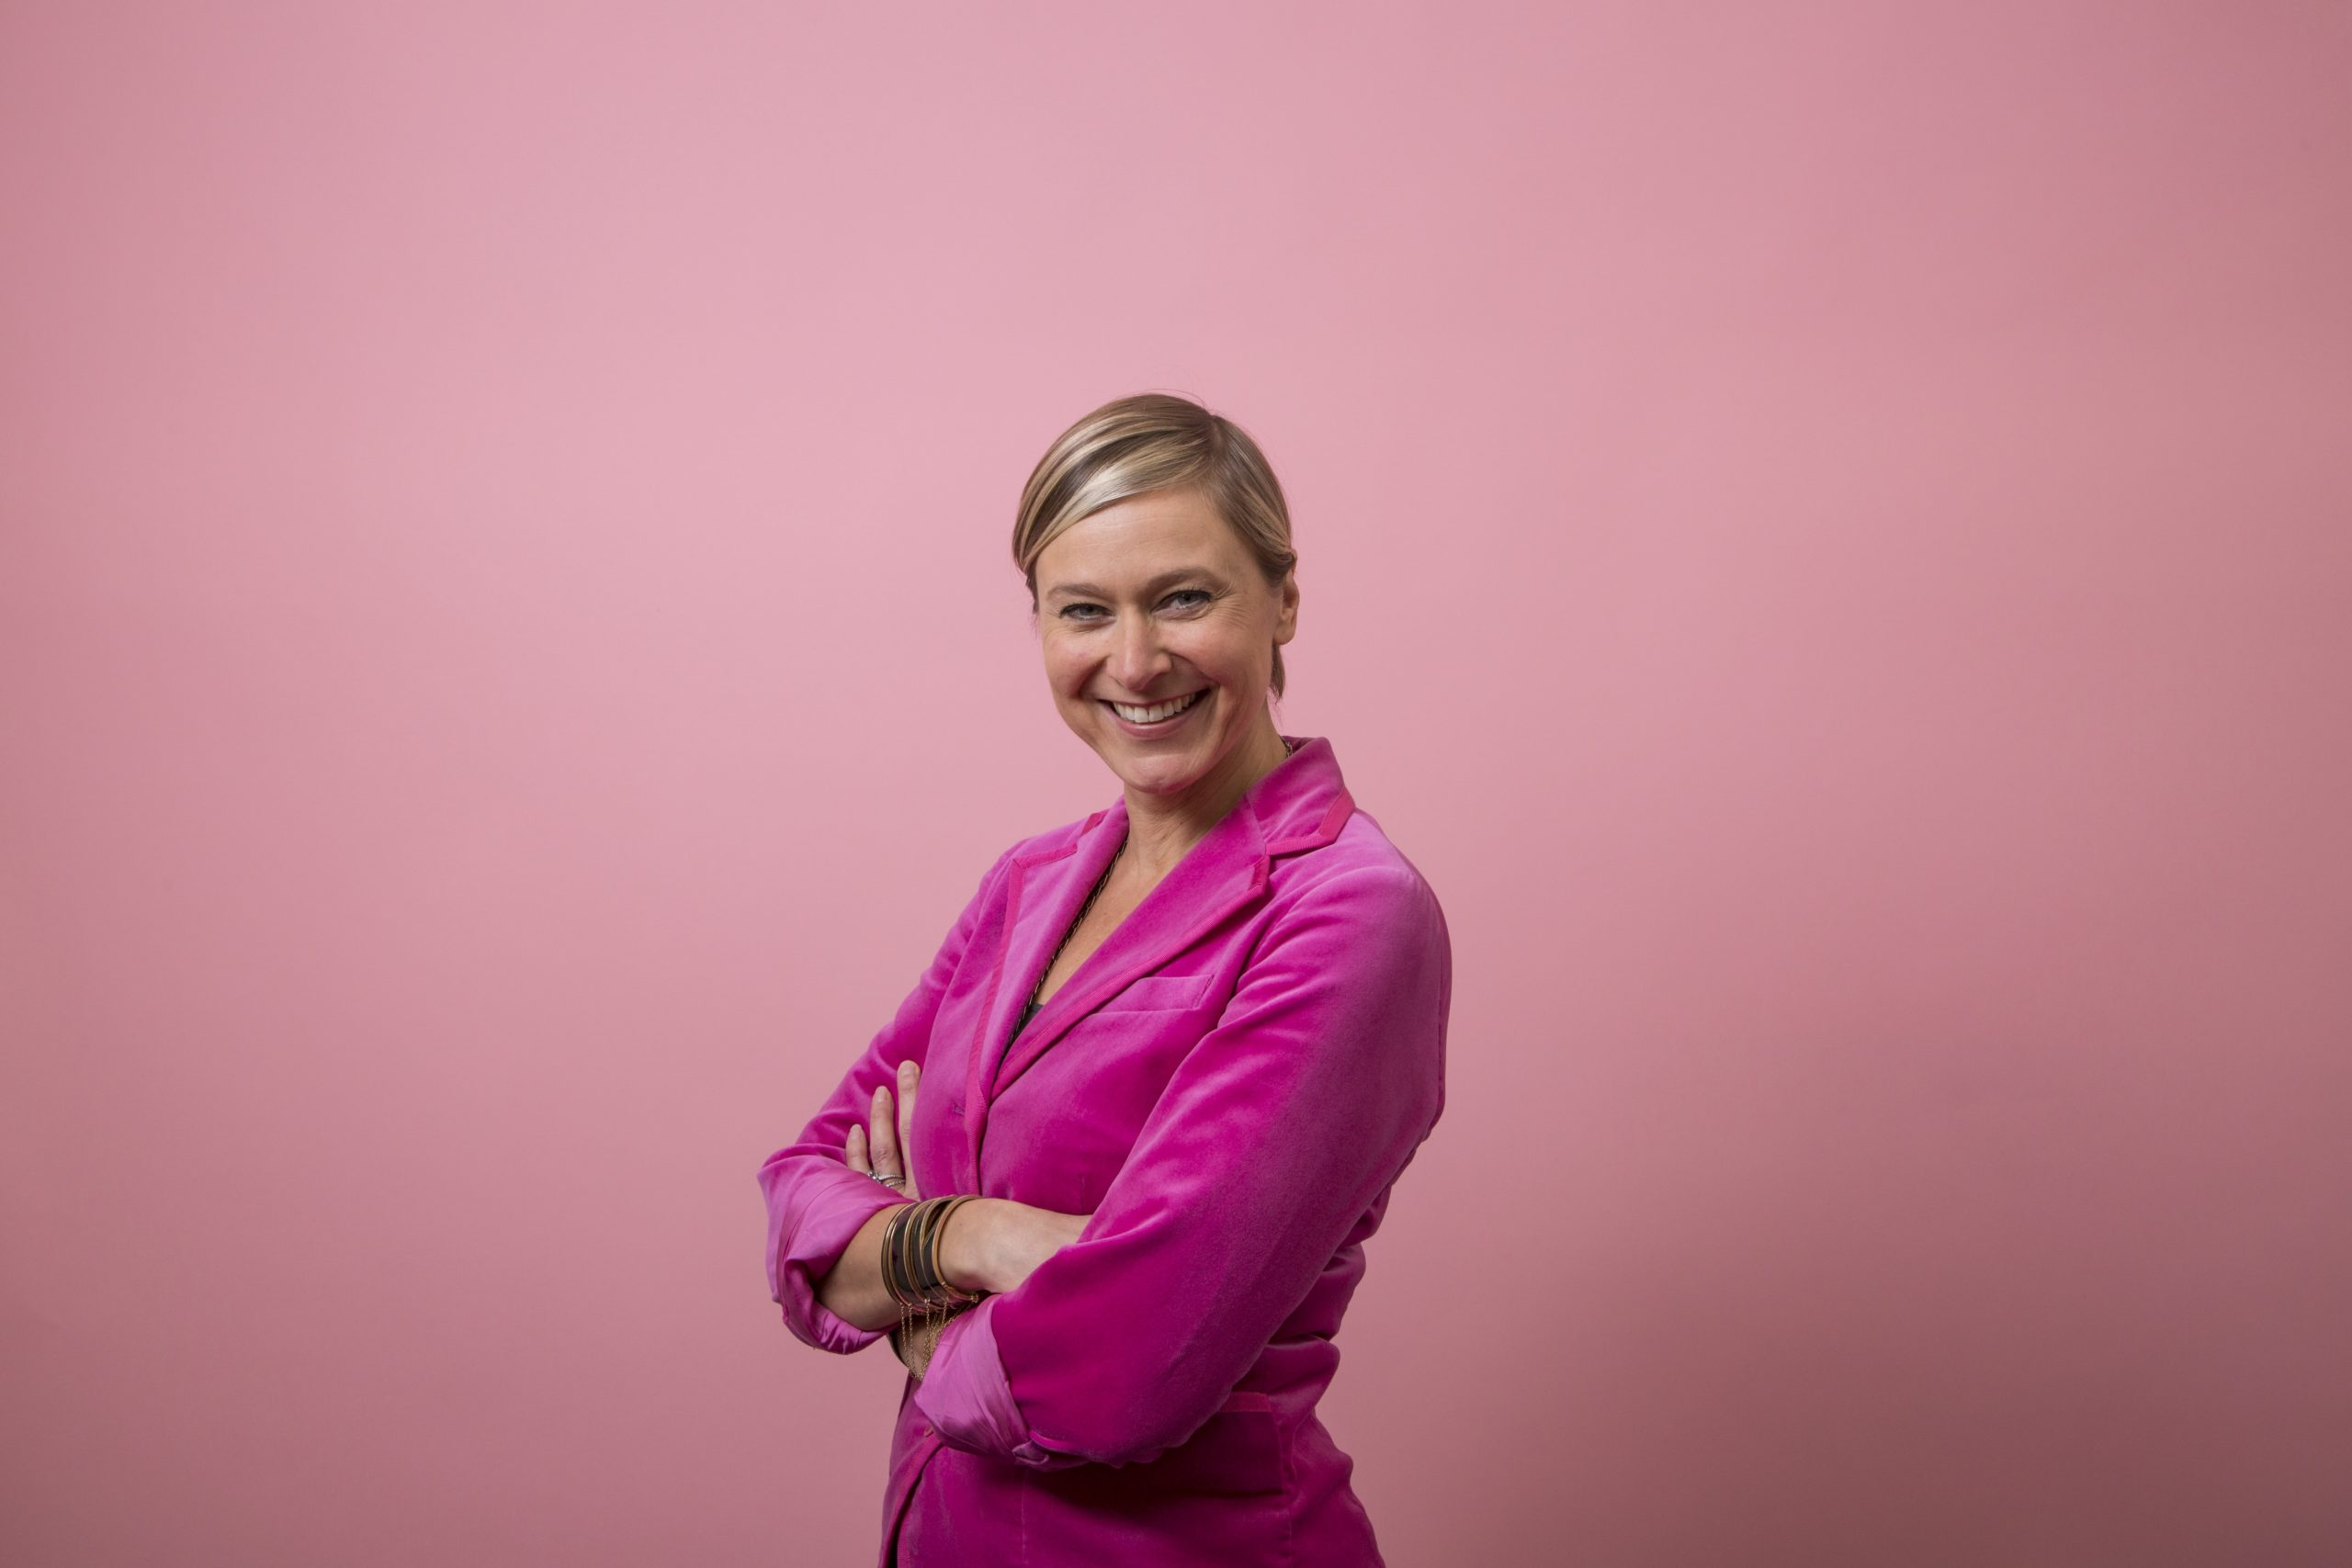 A portrait photo of CPB's incoming global CEO Marianne Malina